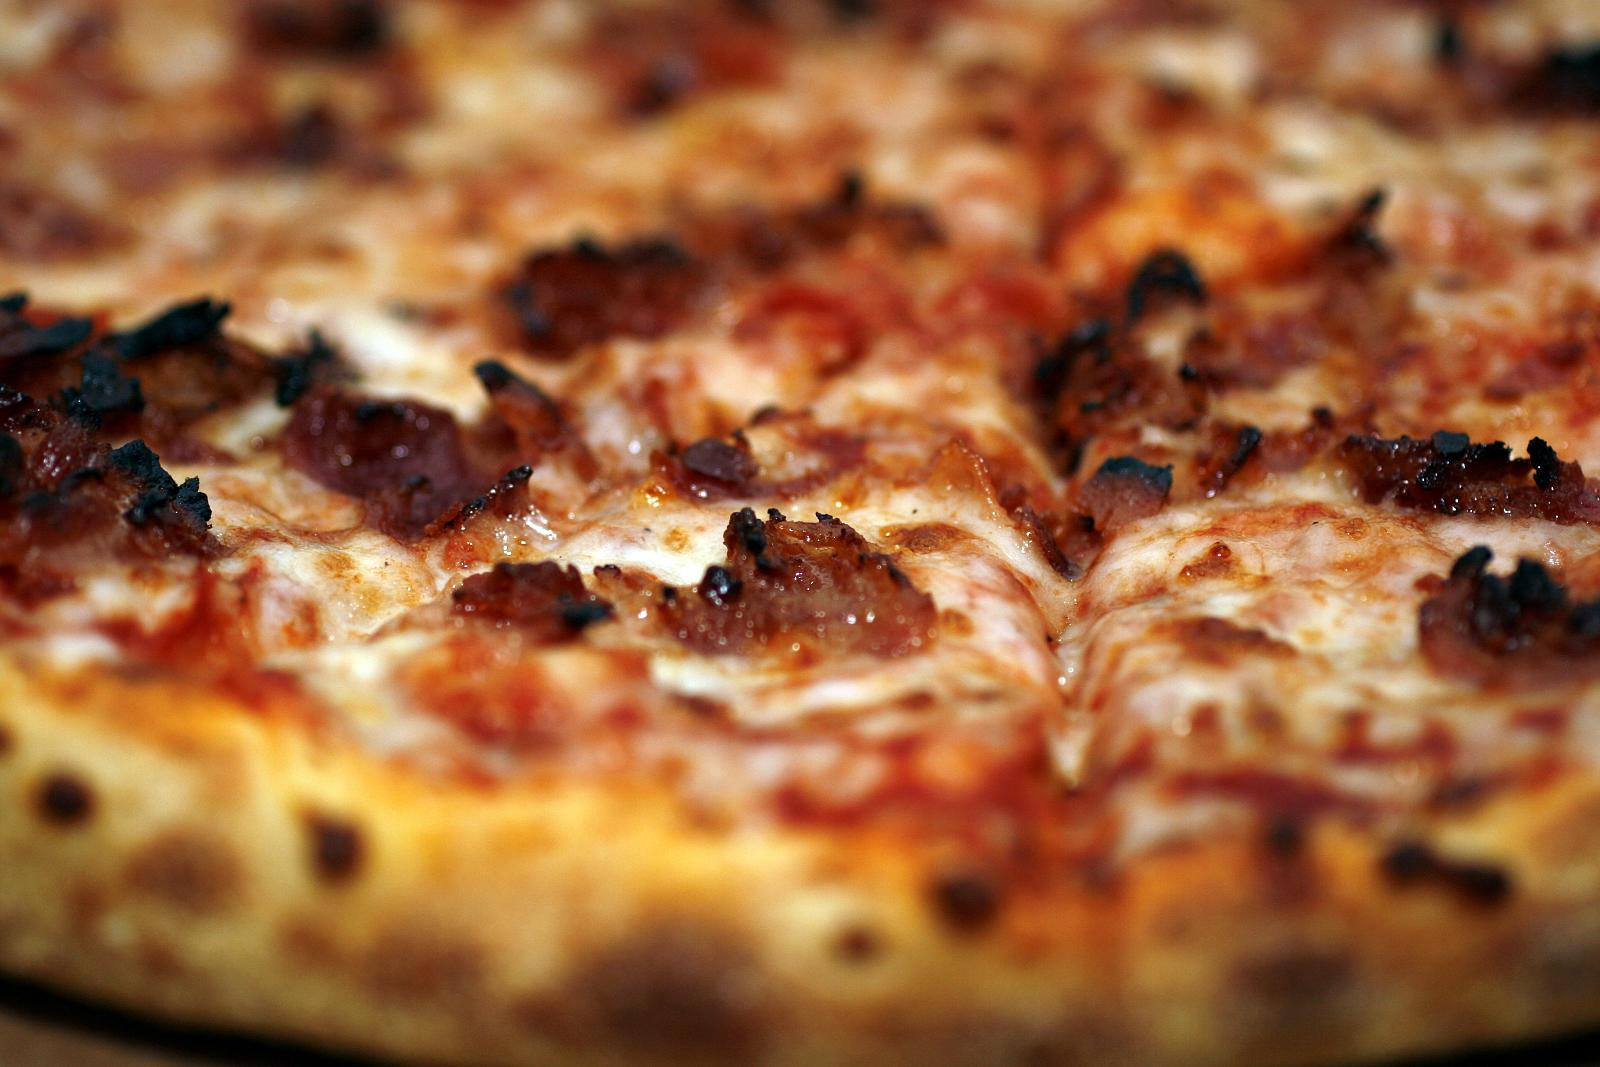 Domino's will track customers on their way to pick up pies